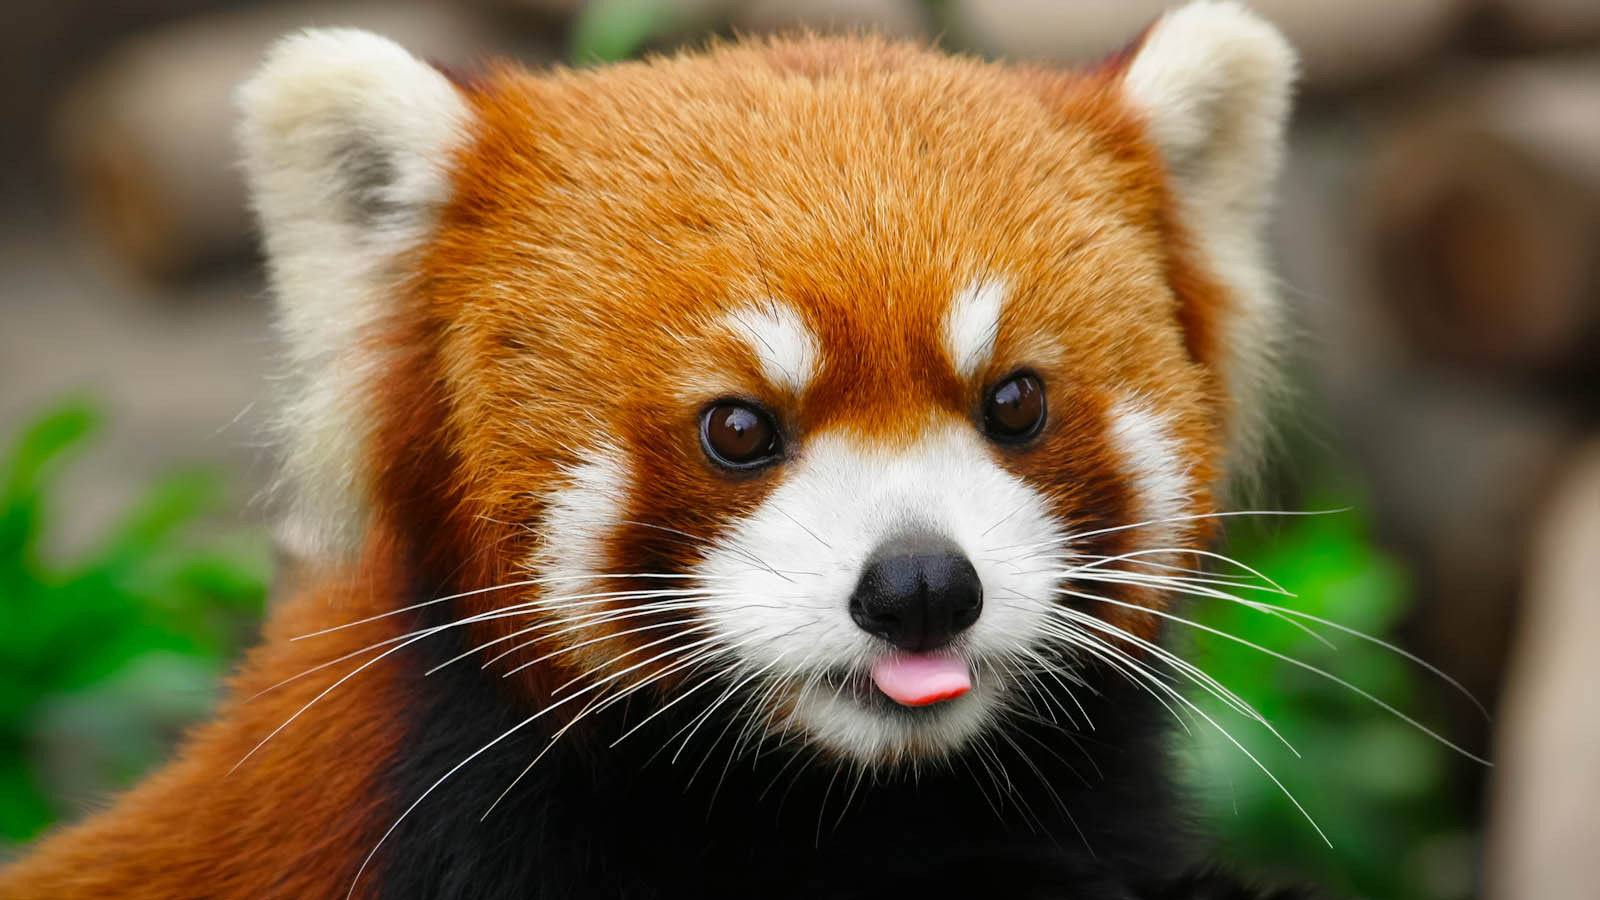 Photograph A little red panda by Harimao Lee on 500px